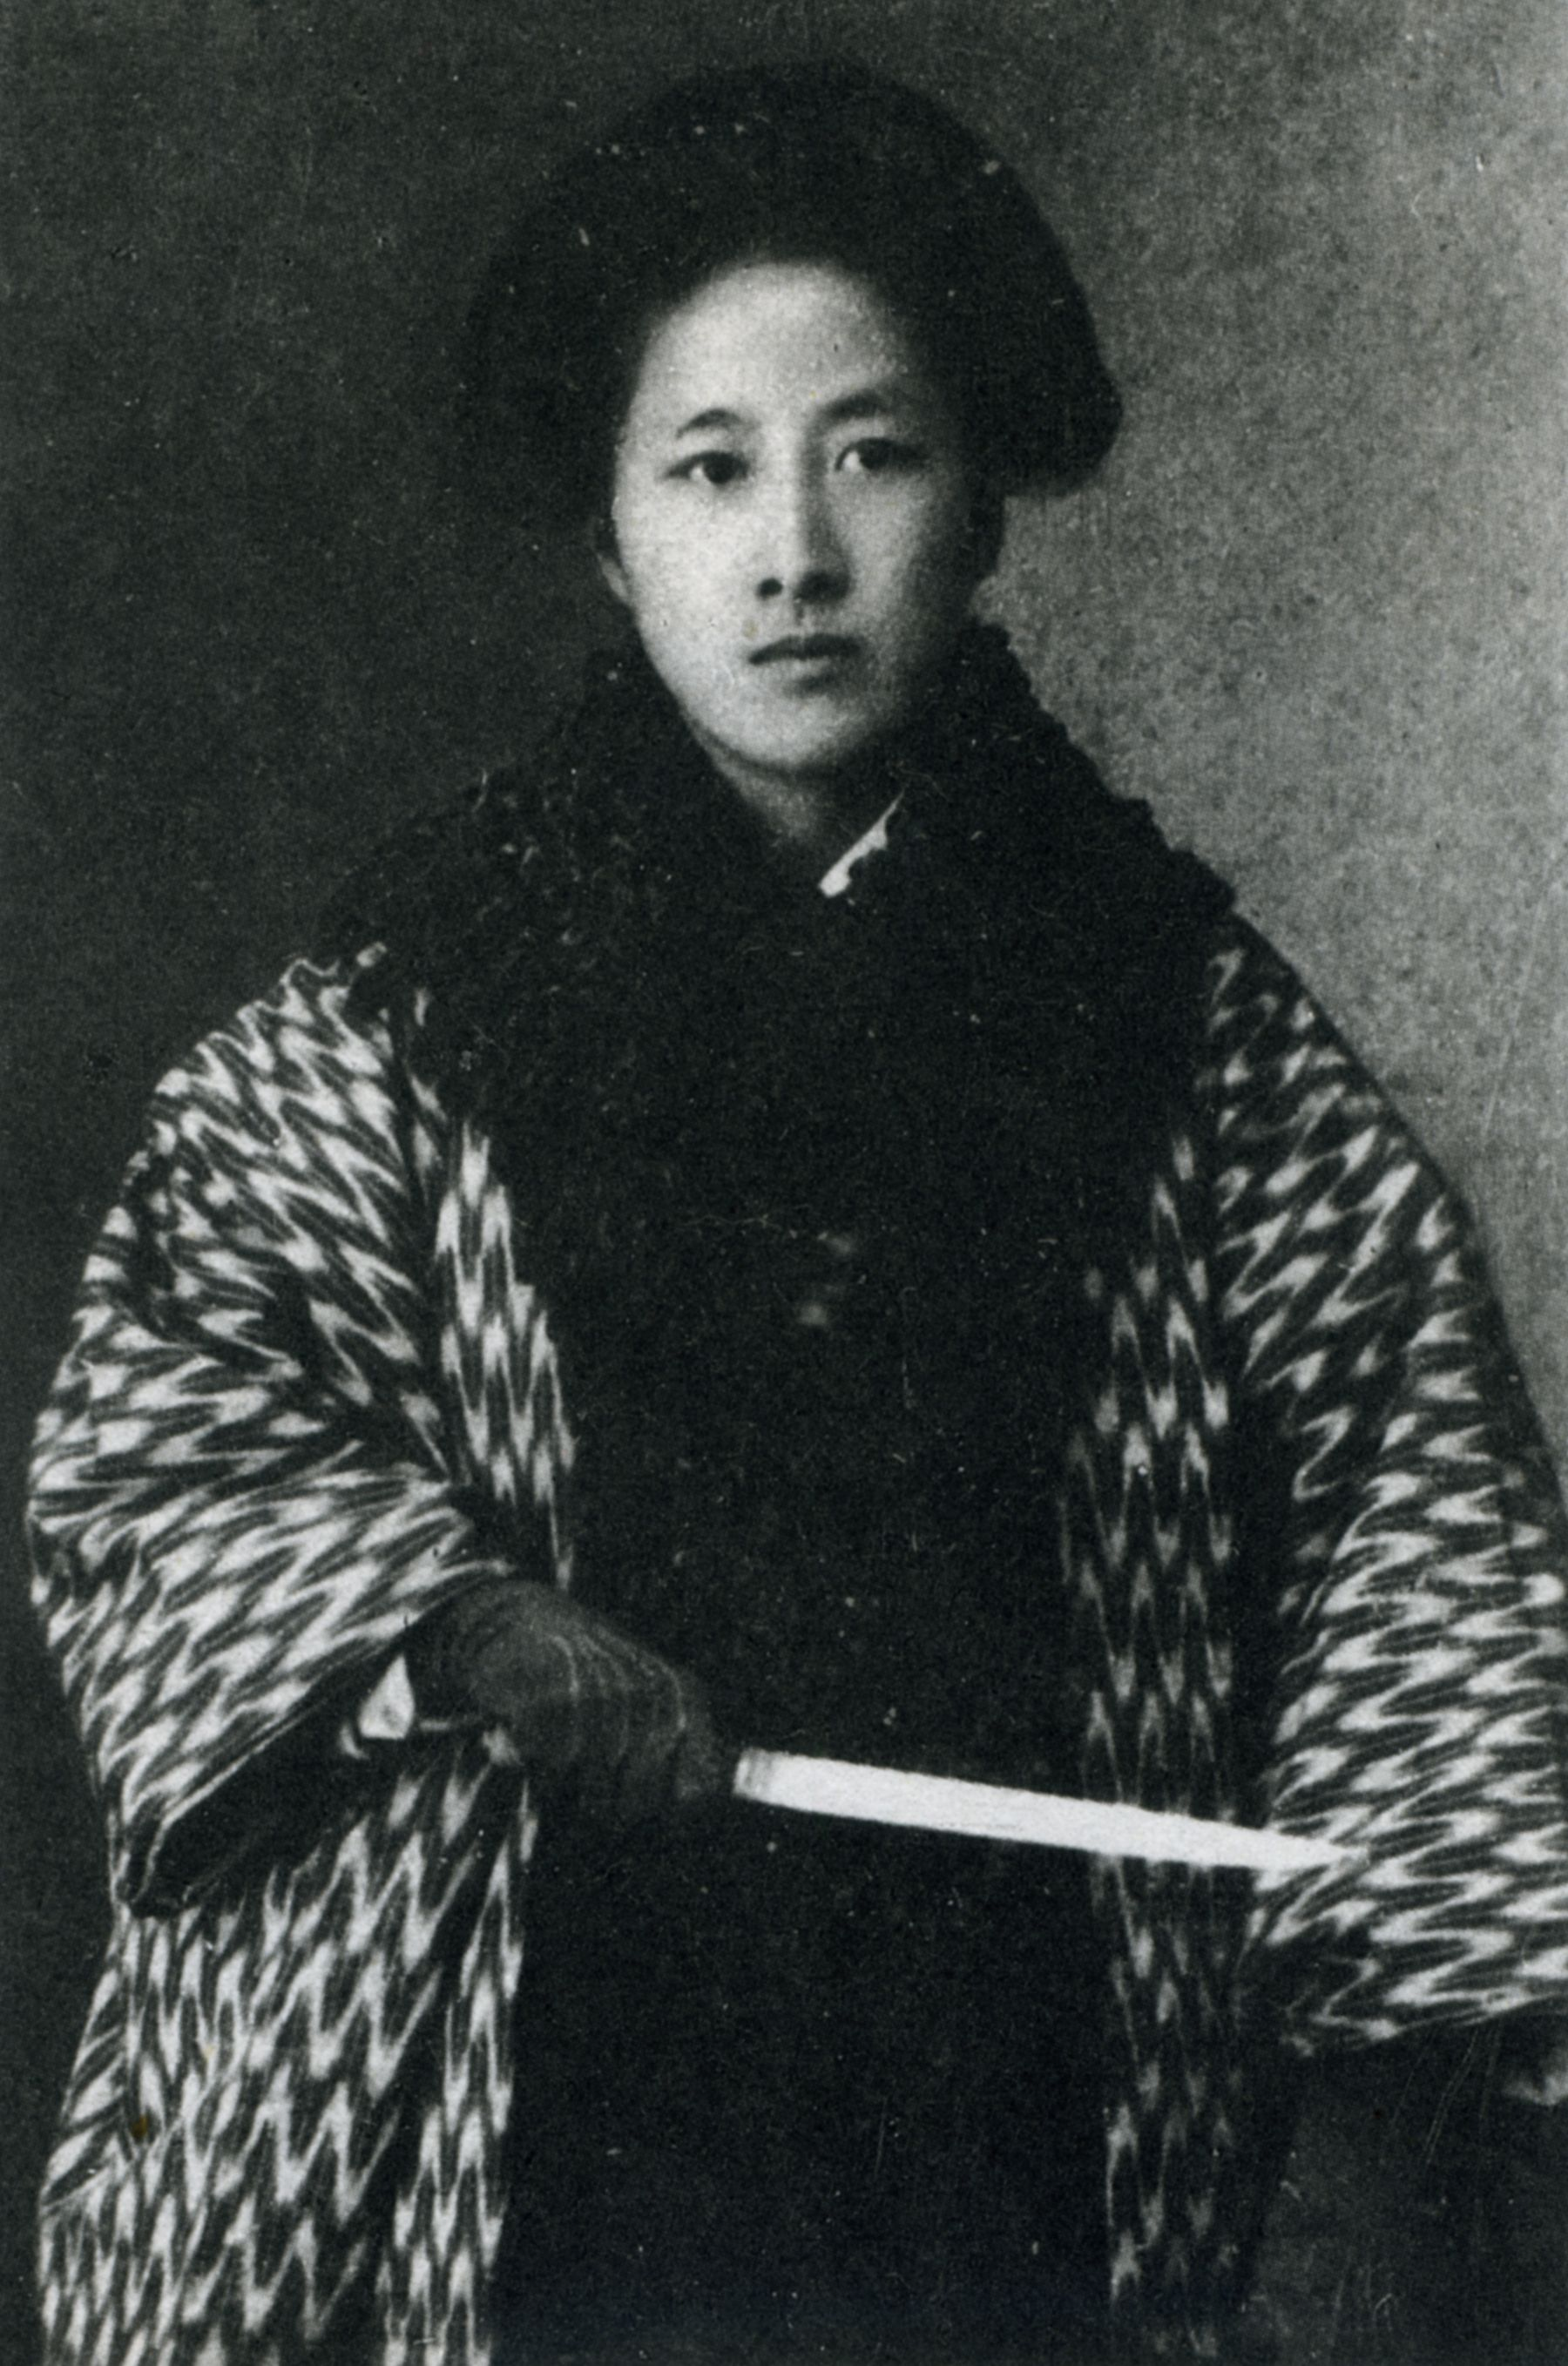 "Qiu Jin (Chinese: 秋瑾;Ch'iu Chin) 1875- 1907) - Chinese revolutionary, feminist, and writer. Her sobriquet name is Jianhu Nüxia (simplified Chinese: 鉴湖女侠; traditional Chinese: 鑑湖女俠; pinyin: Jiànhú Nǚxiá) which, when translated literally into English, means ""Woman Knight of Mirror Lake"". Qiu was executed after a failed uprising against the Qing dynasty.  She is considered a national heroine in China"